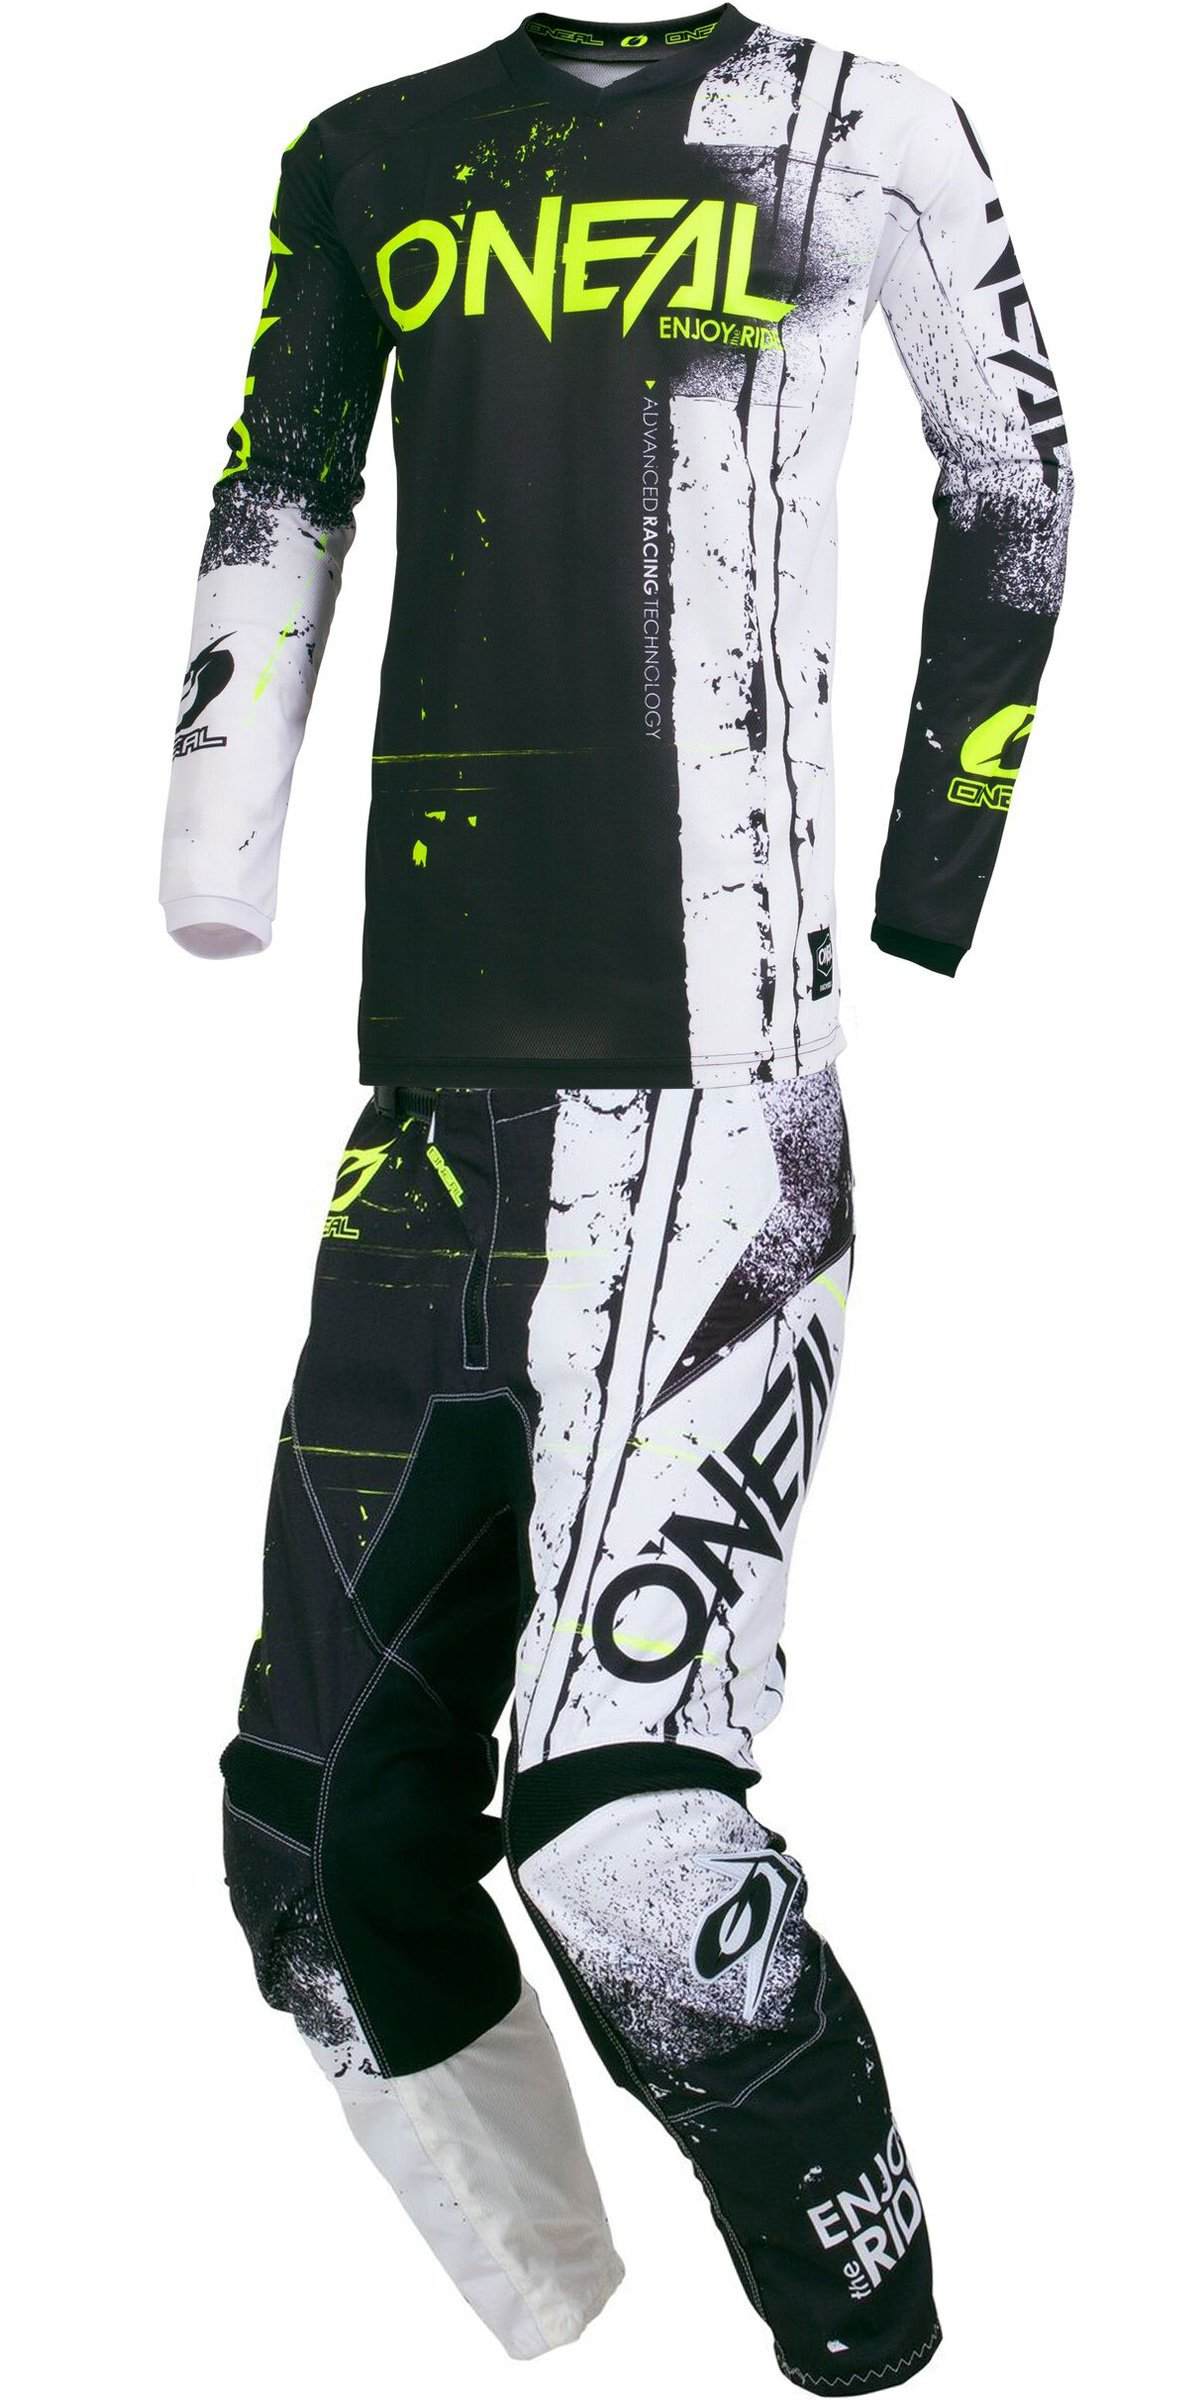 O'Neal - 2019 Element Shred (Mens Black Large/32W) MX Riding Gear Combo Set, Motocross Off-Road Dirt Bike Jersey & Pant